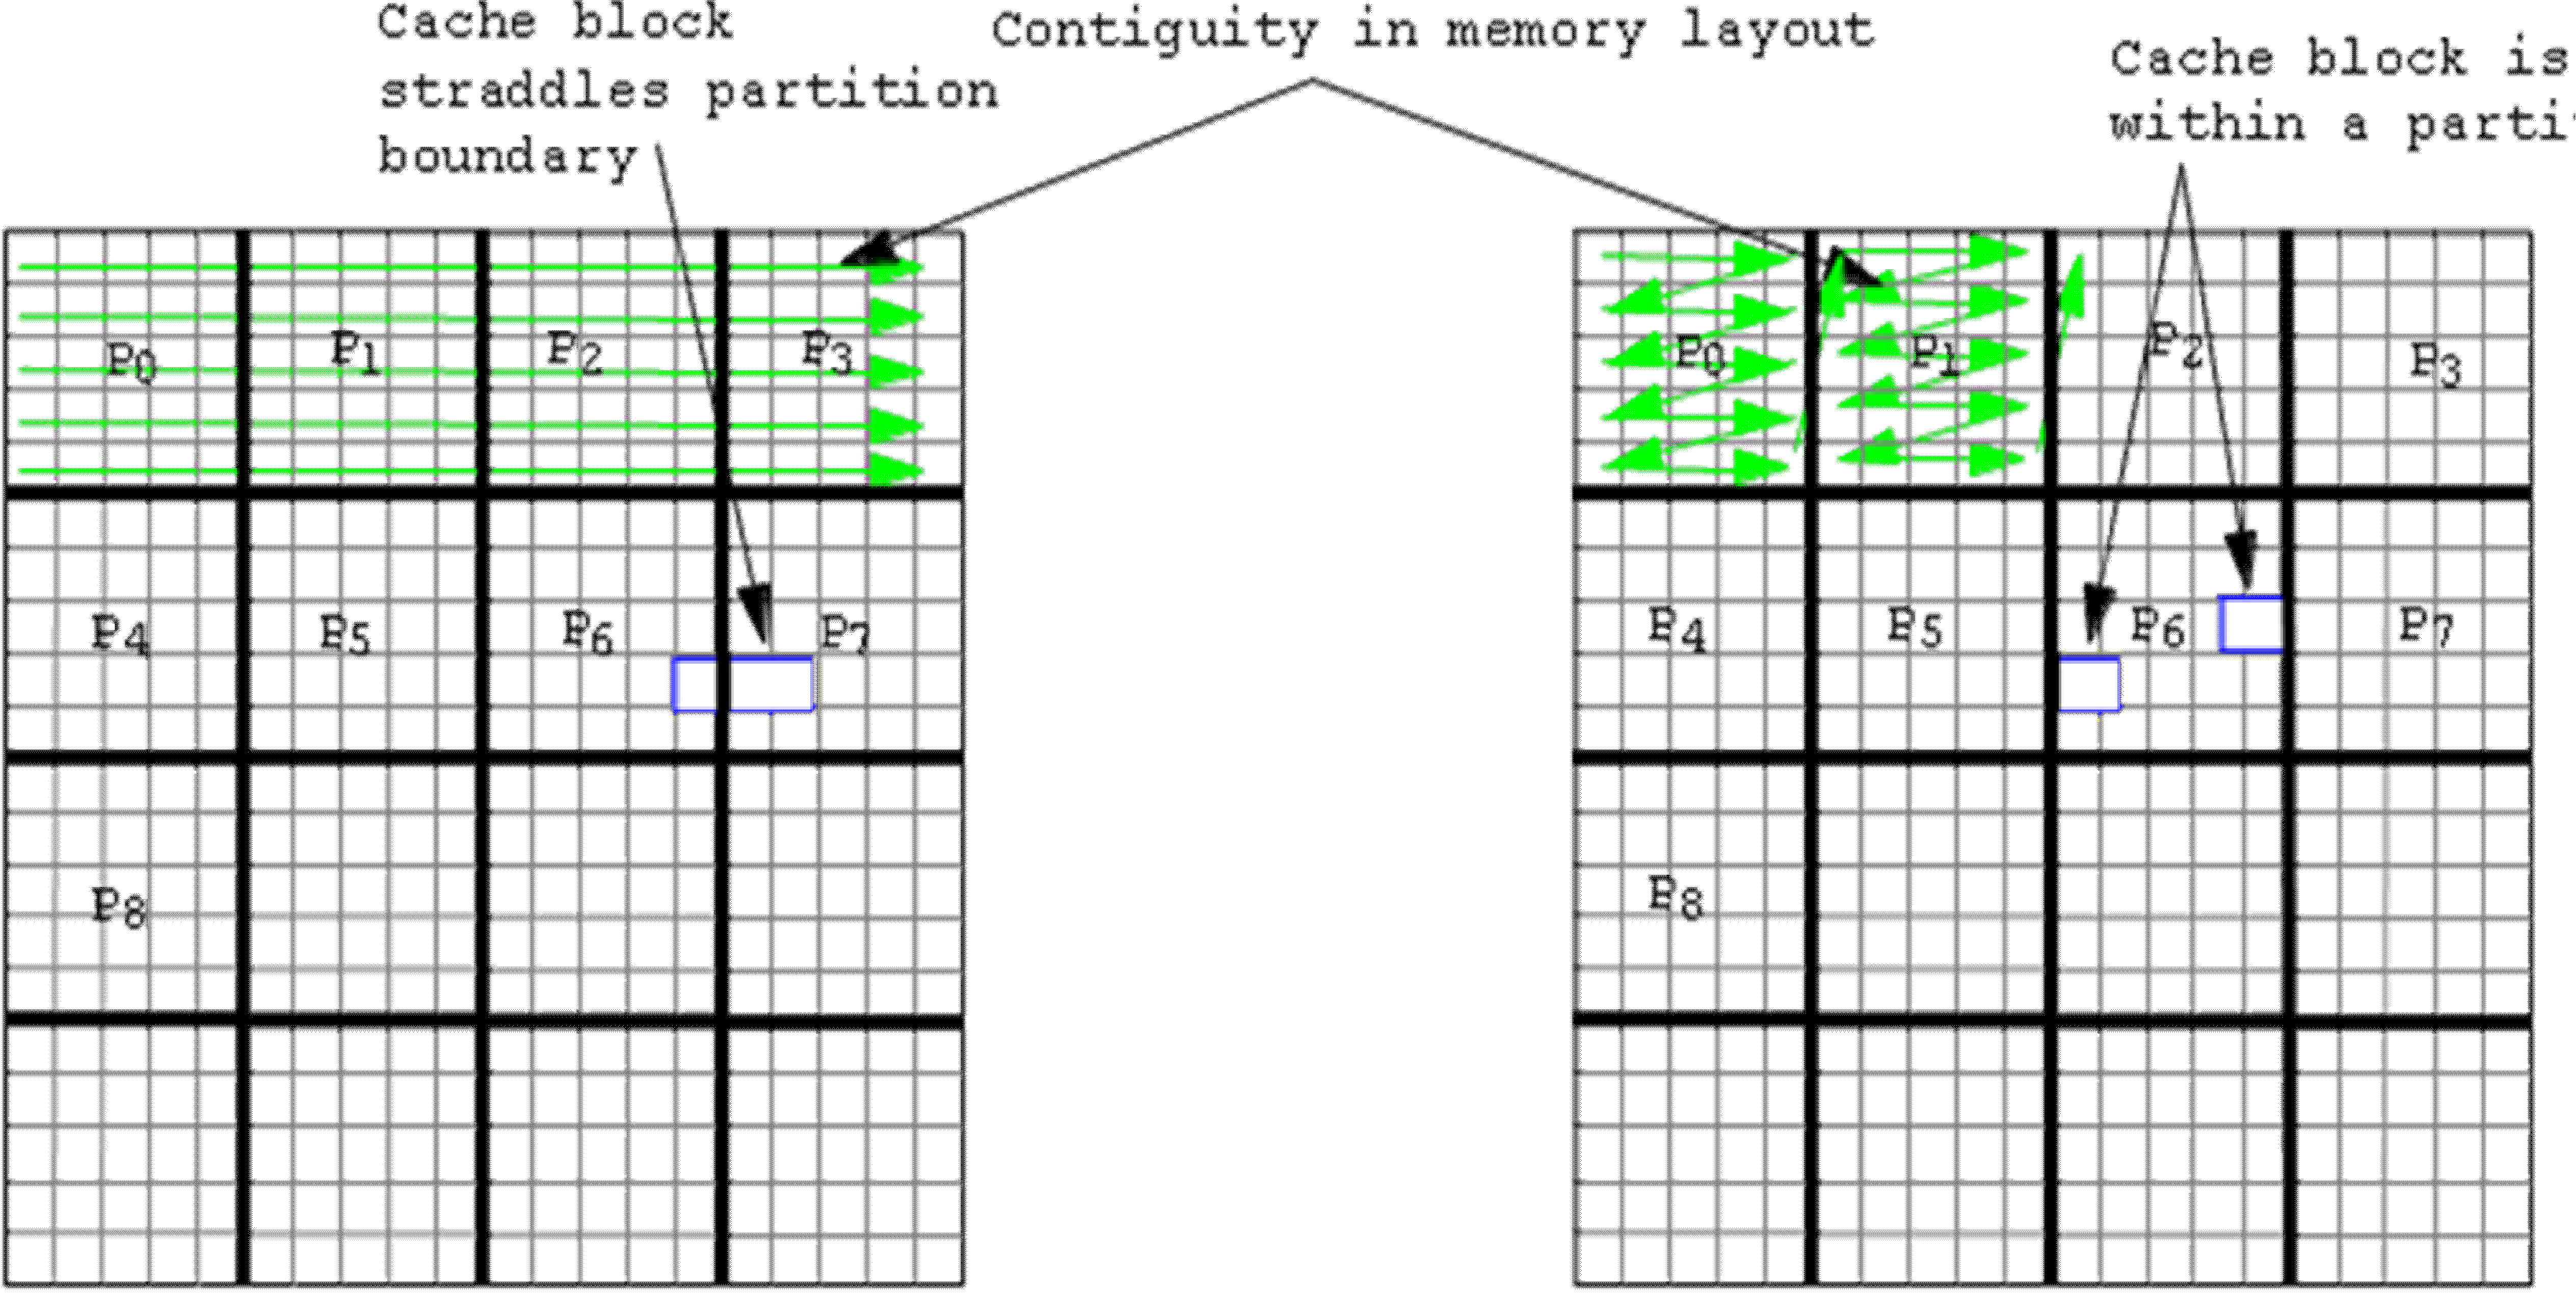 Tiling can be used to Partition Task such that Memory Hierarchy is better Leveraged Challenge: Tradeoff in Granularity Size - From a BandWidth vs.